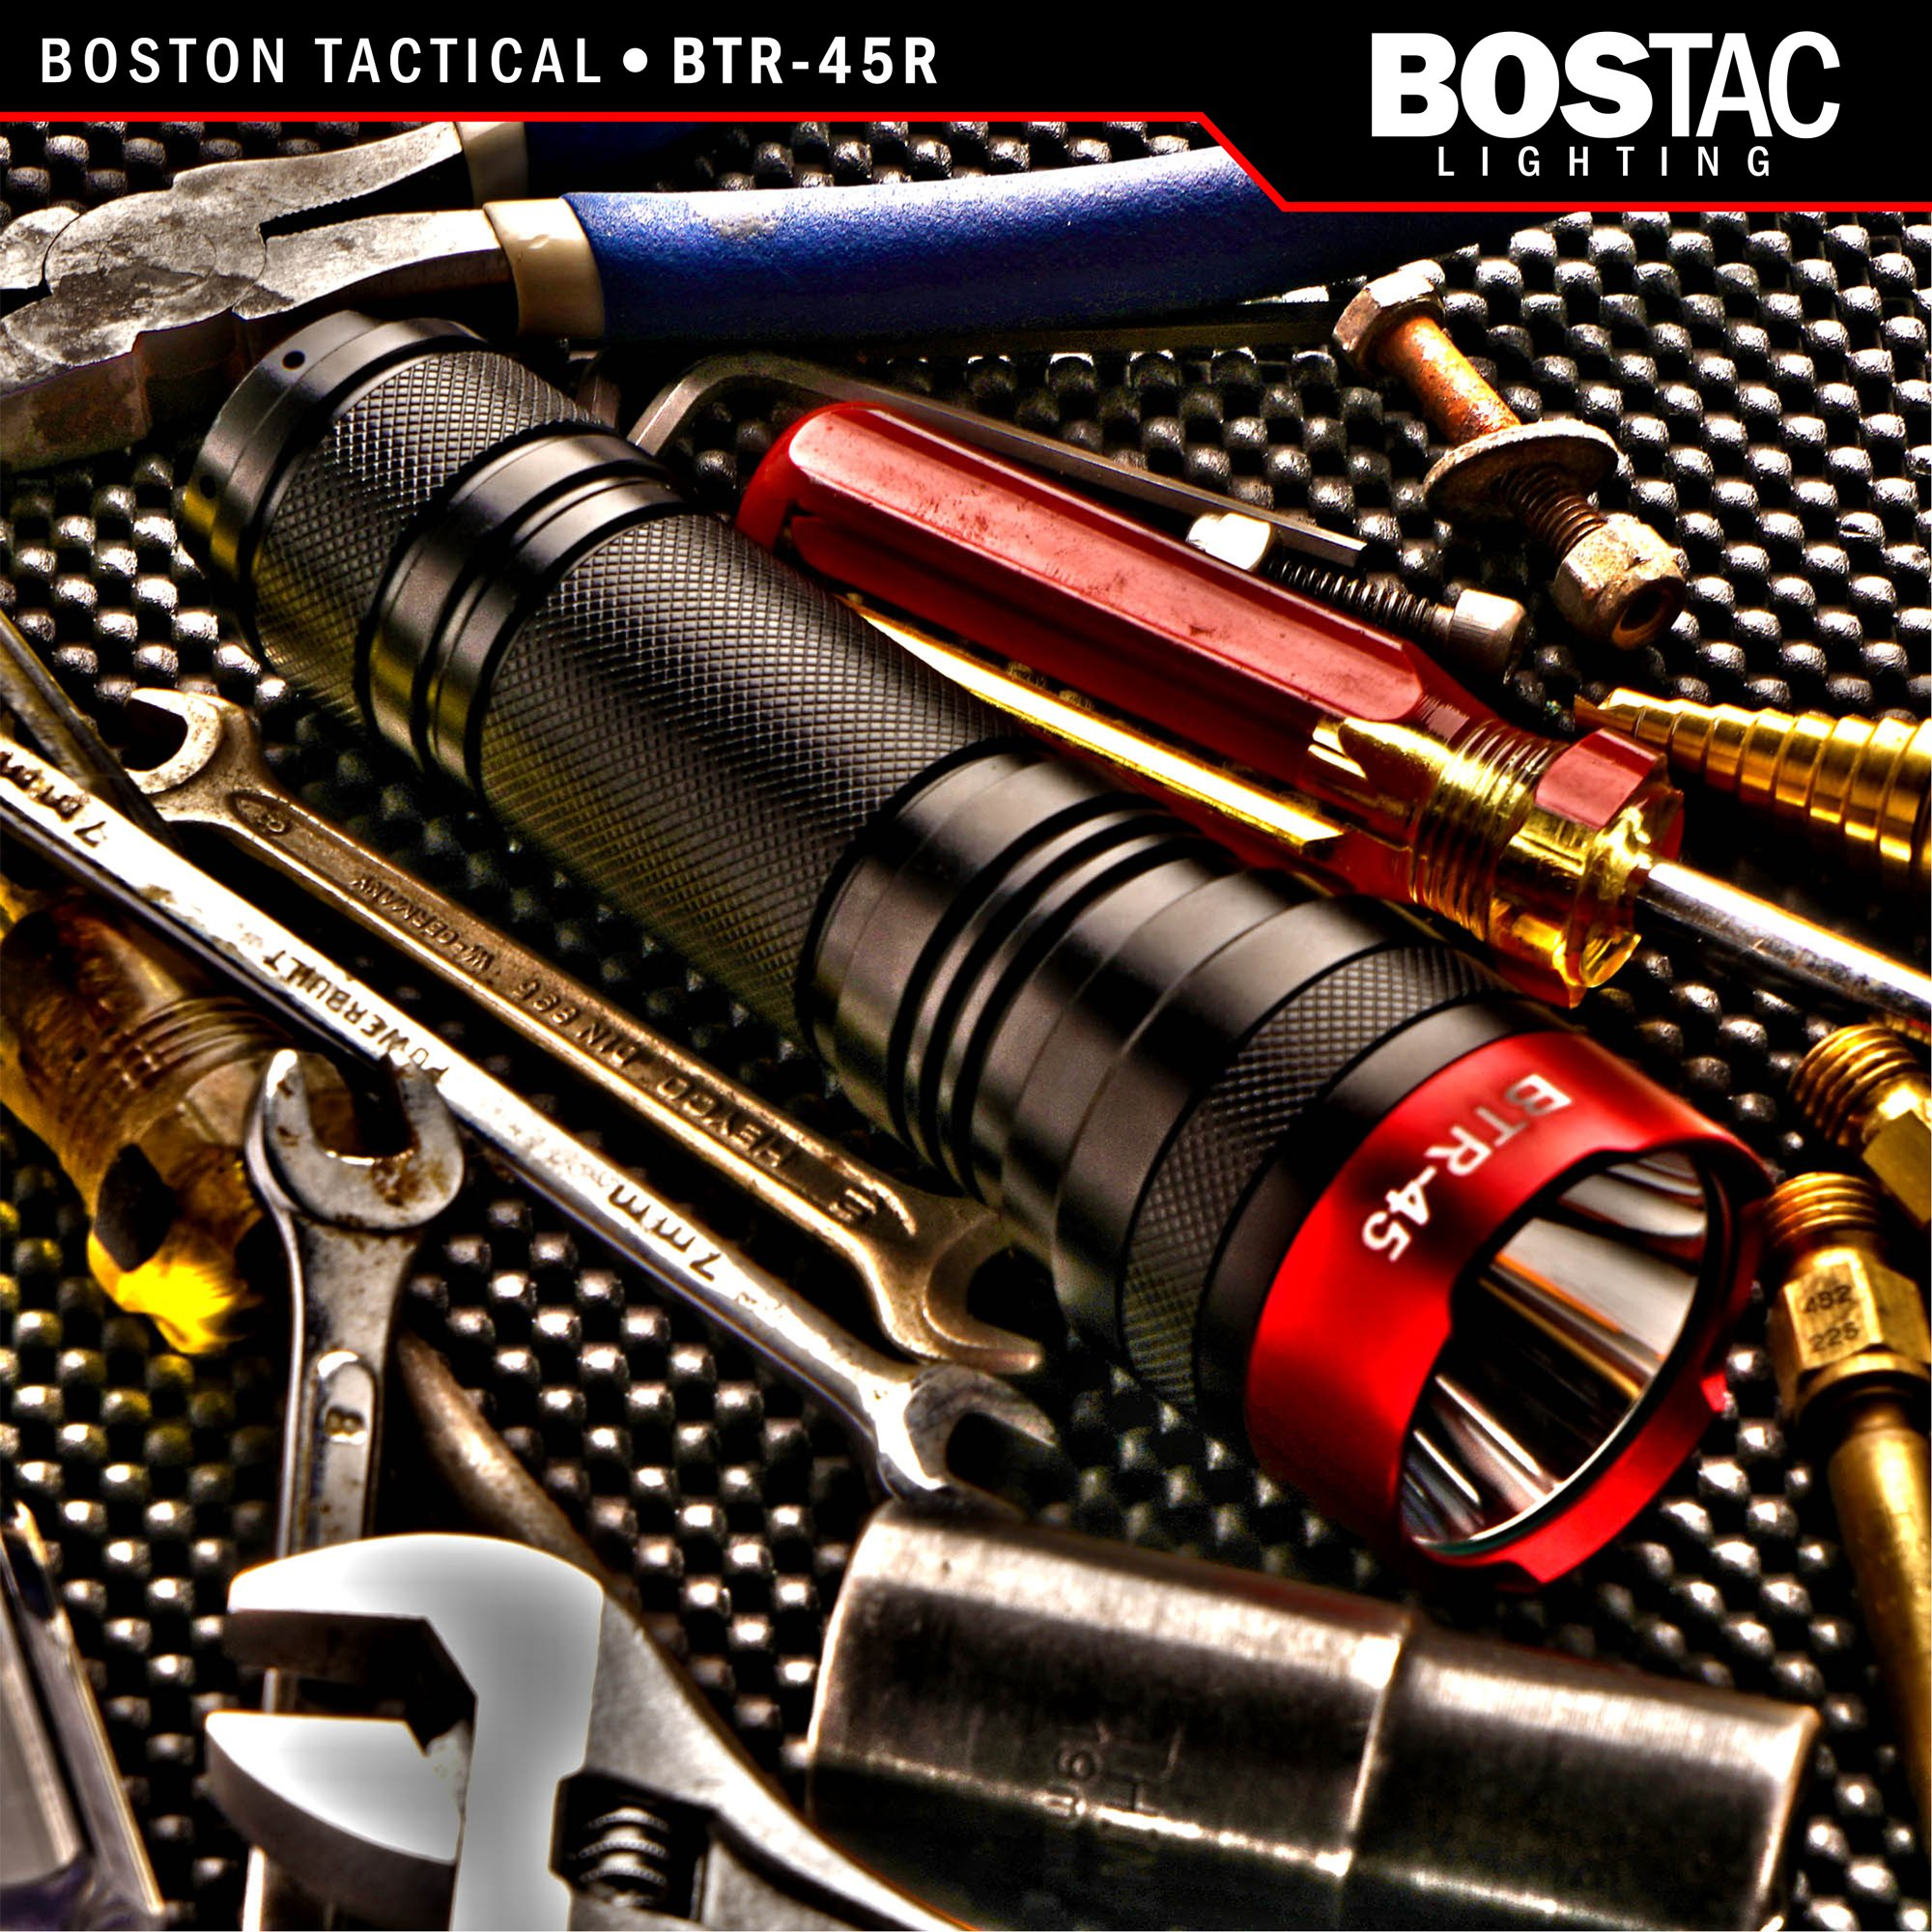 BOSTAC™ BTR-45R Rechargeable Tactical Flashlight - Hand Held Professional Flashlight by Boston Tactical with High Intensity CREE XML2 U2 USA LED Bulb, 1,100 Lumens, Sealed Against Solvents by Bostac (Image #2)